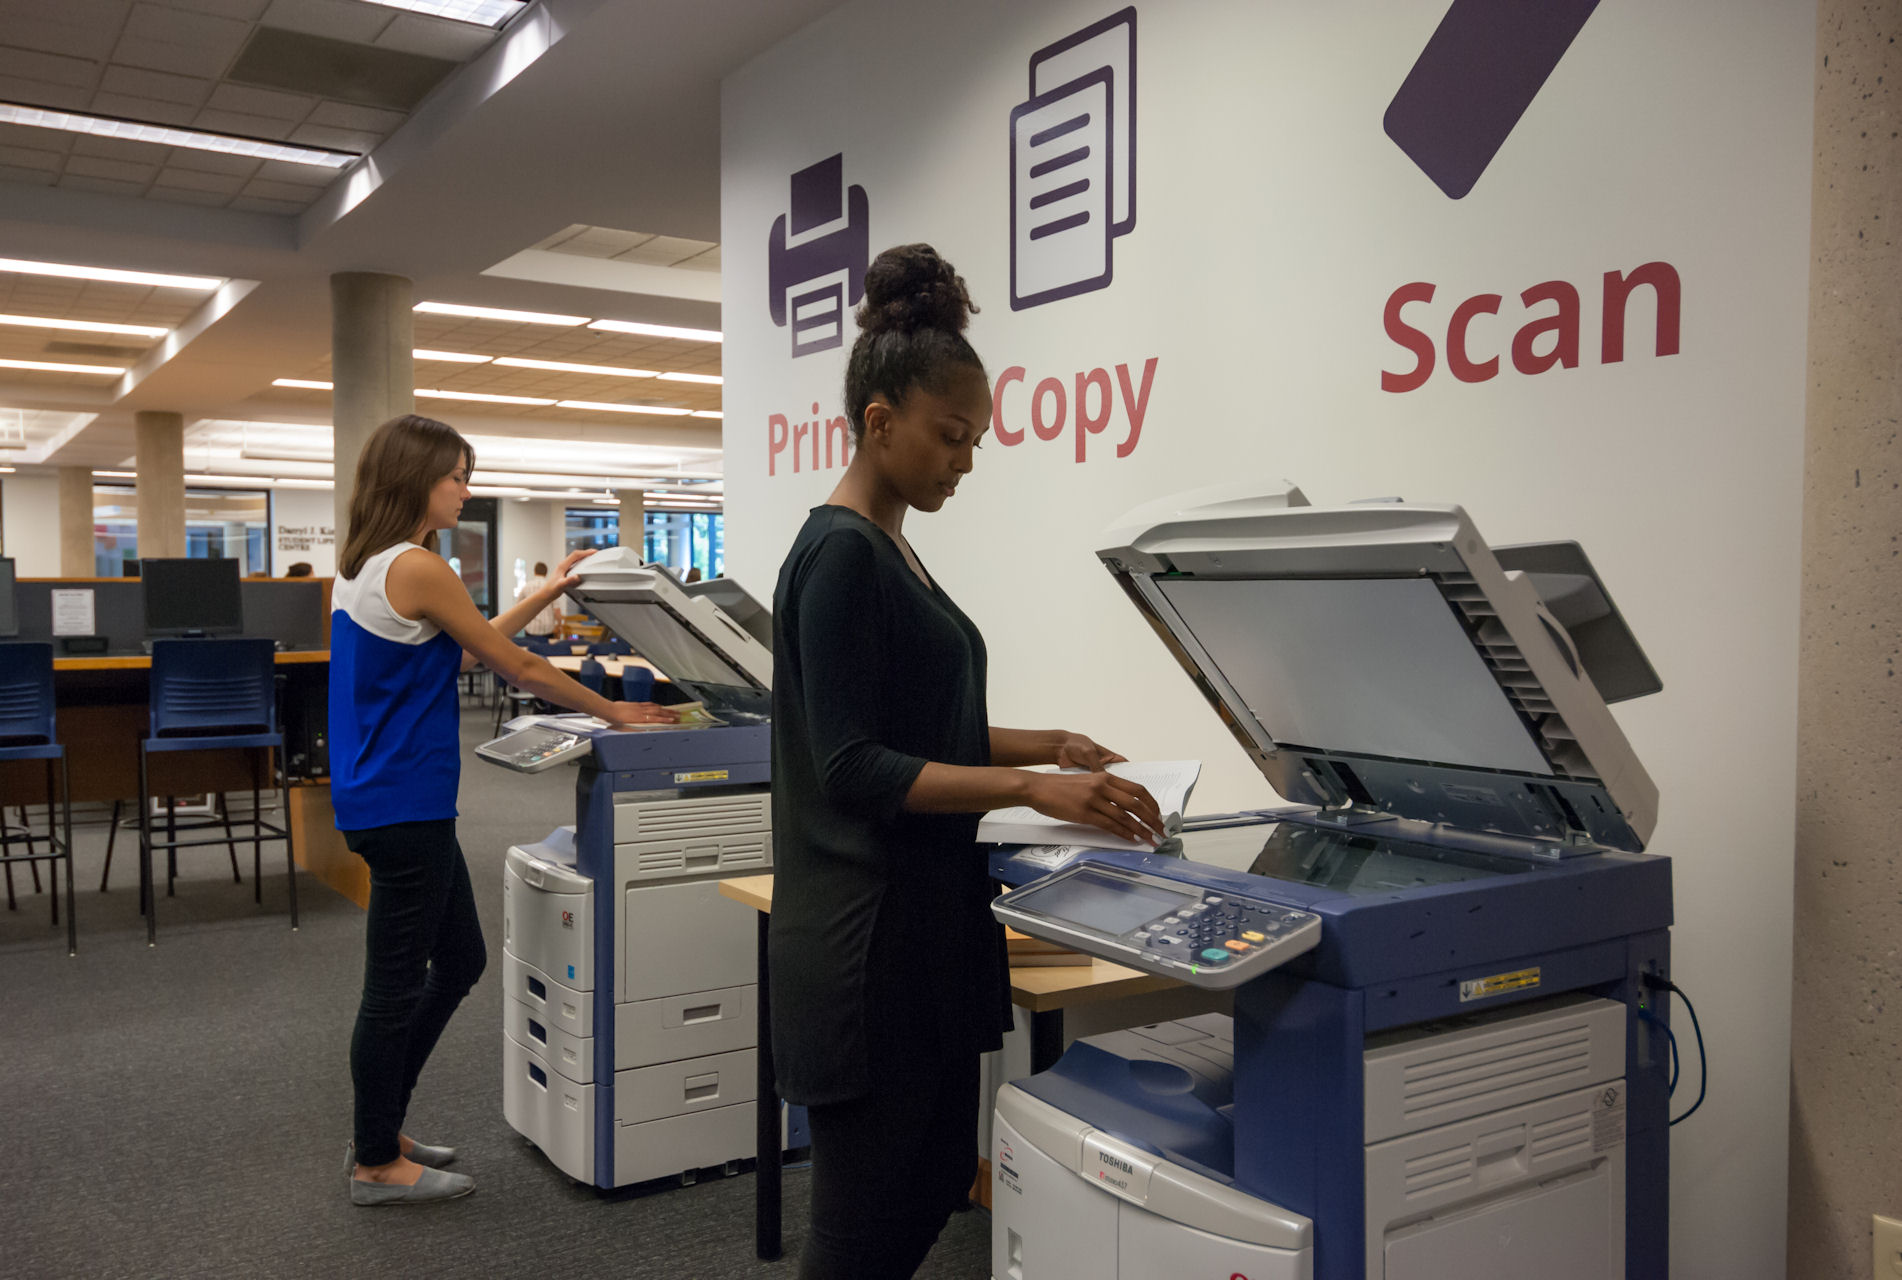 Image: photocopy machines